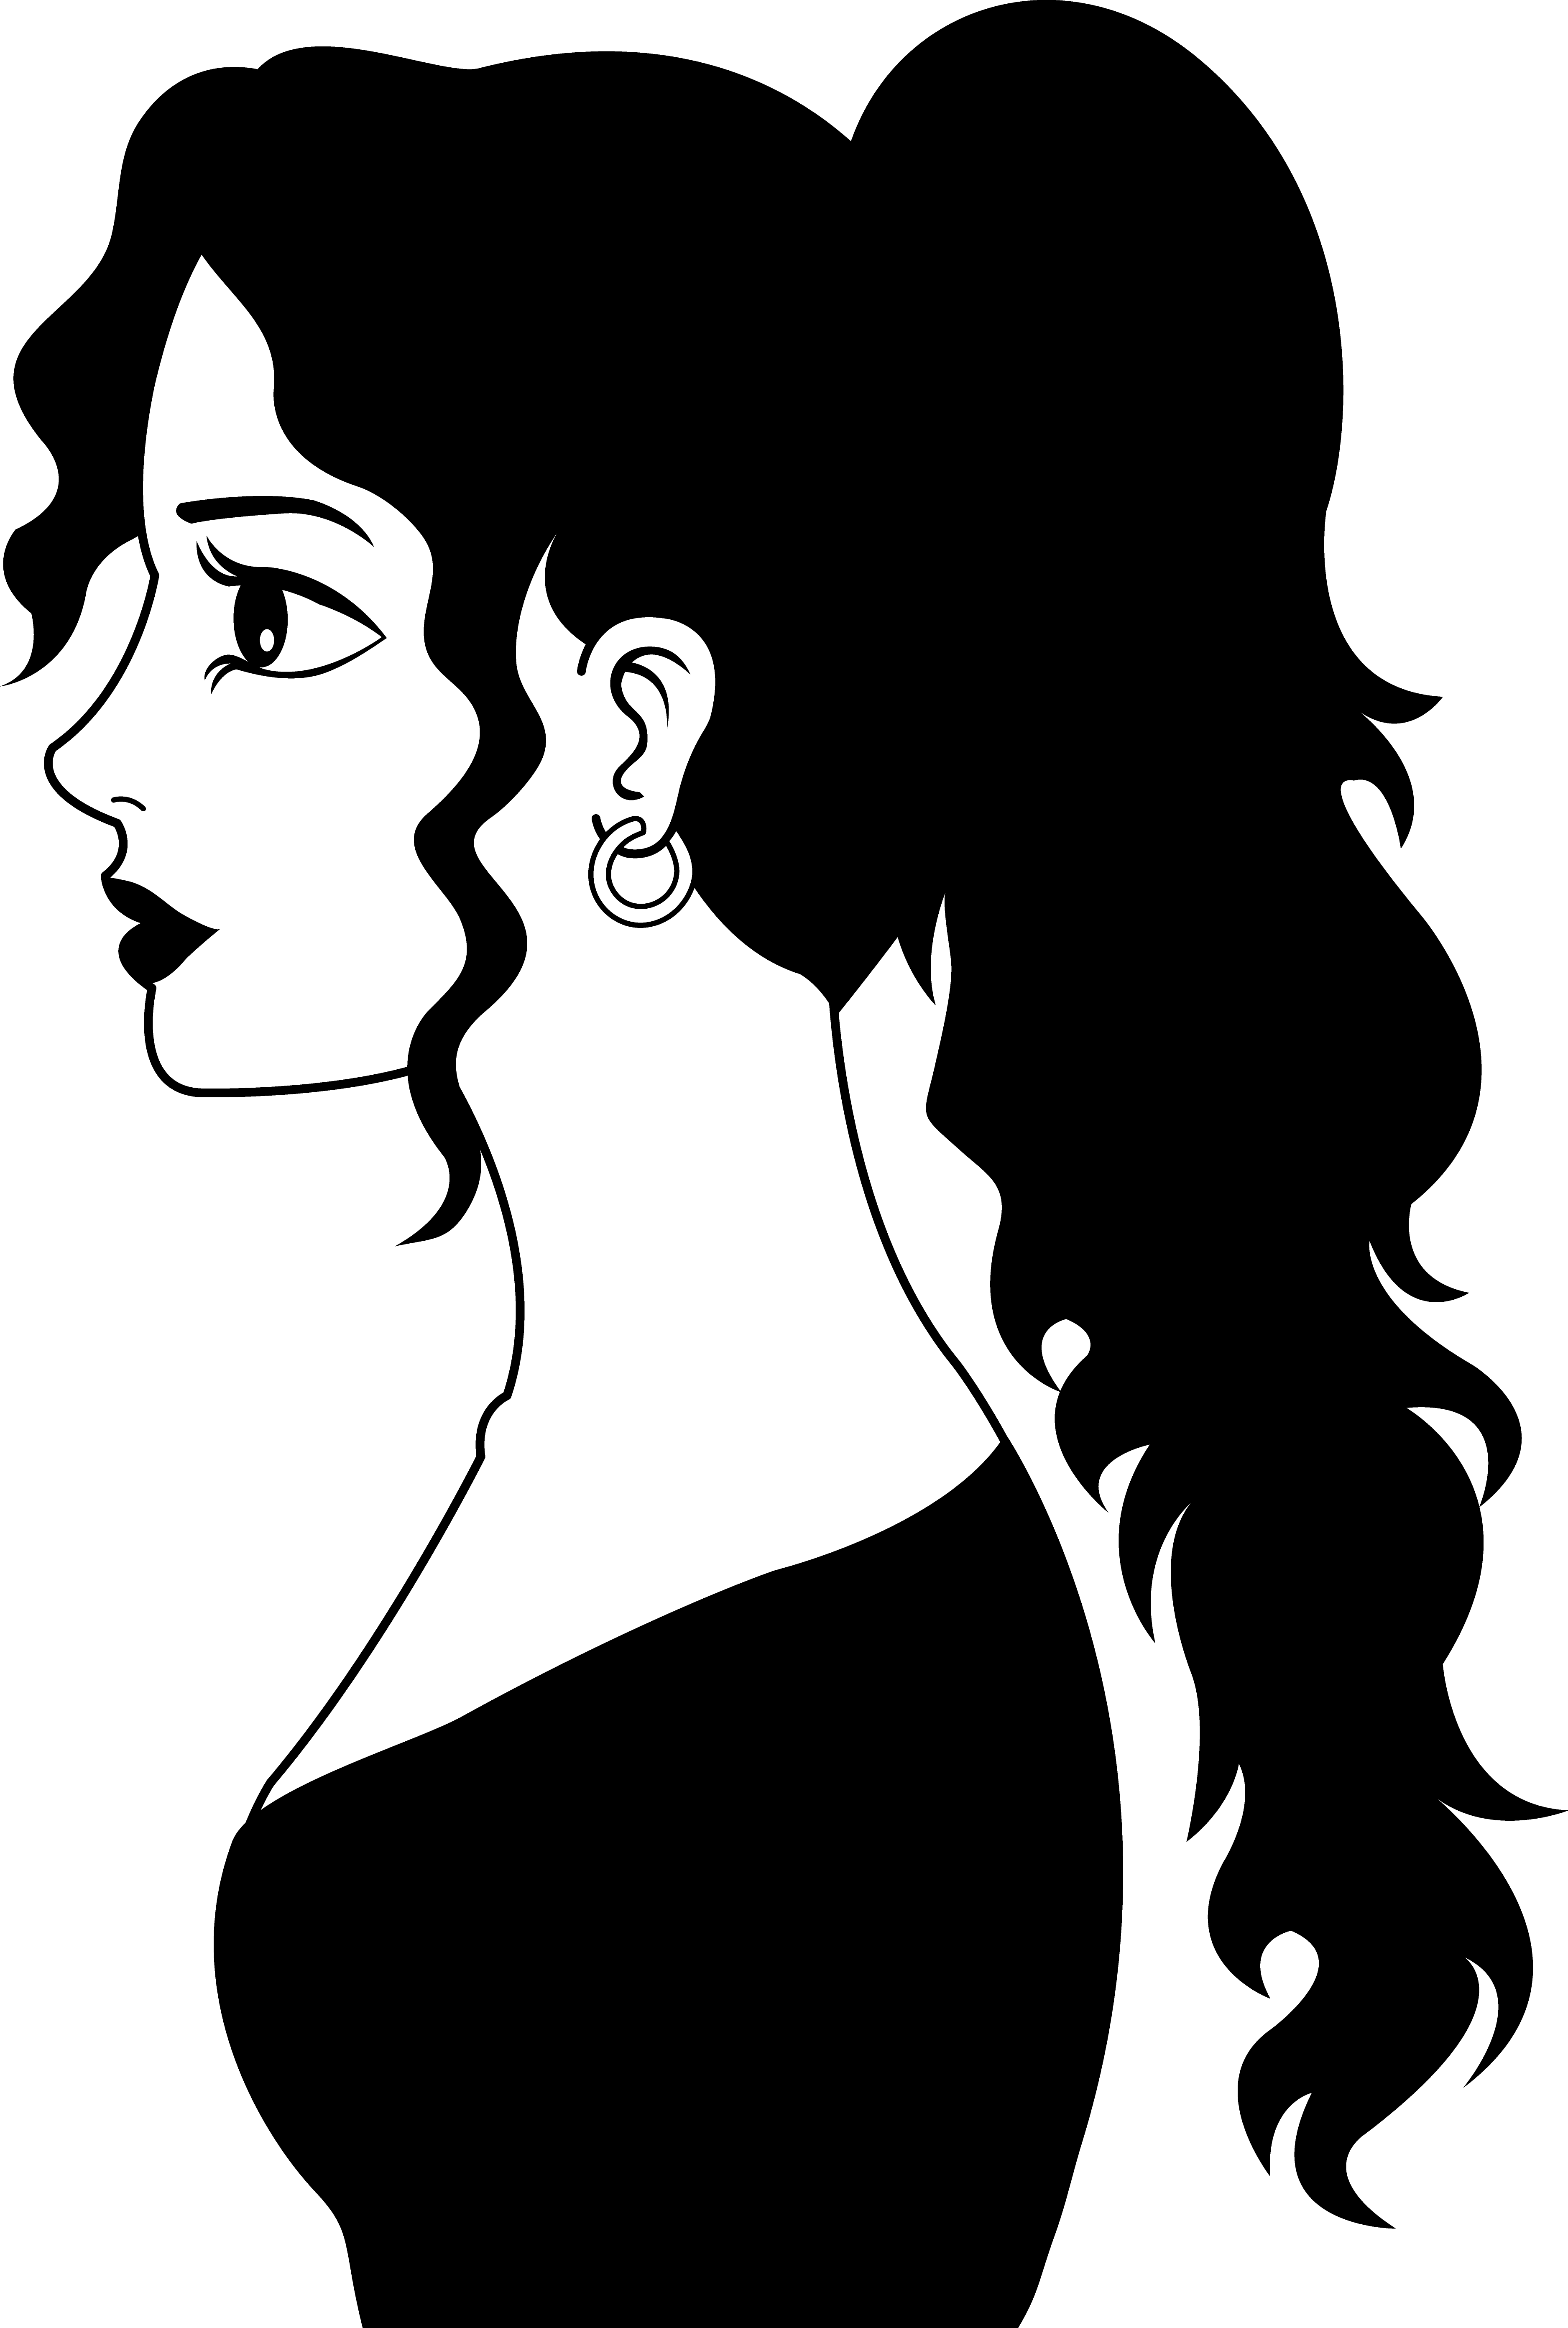 Profile of a Woman in Black and White.